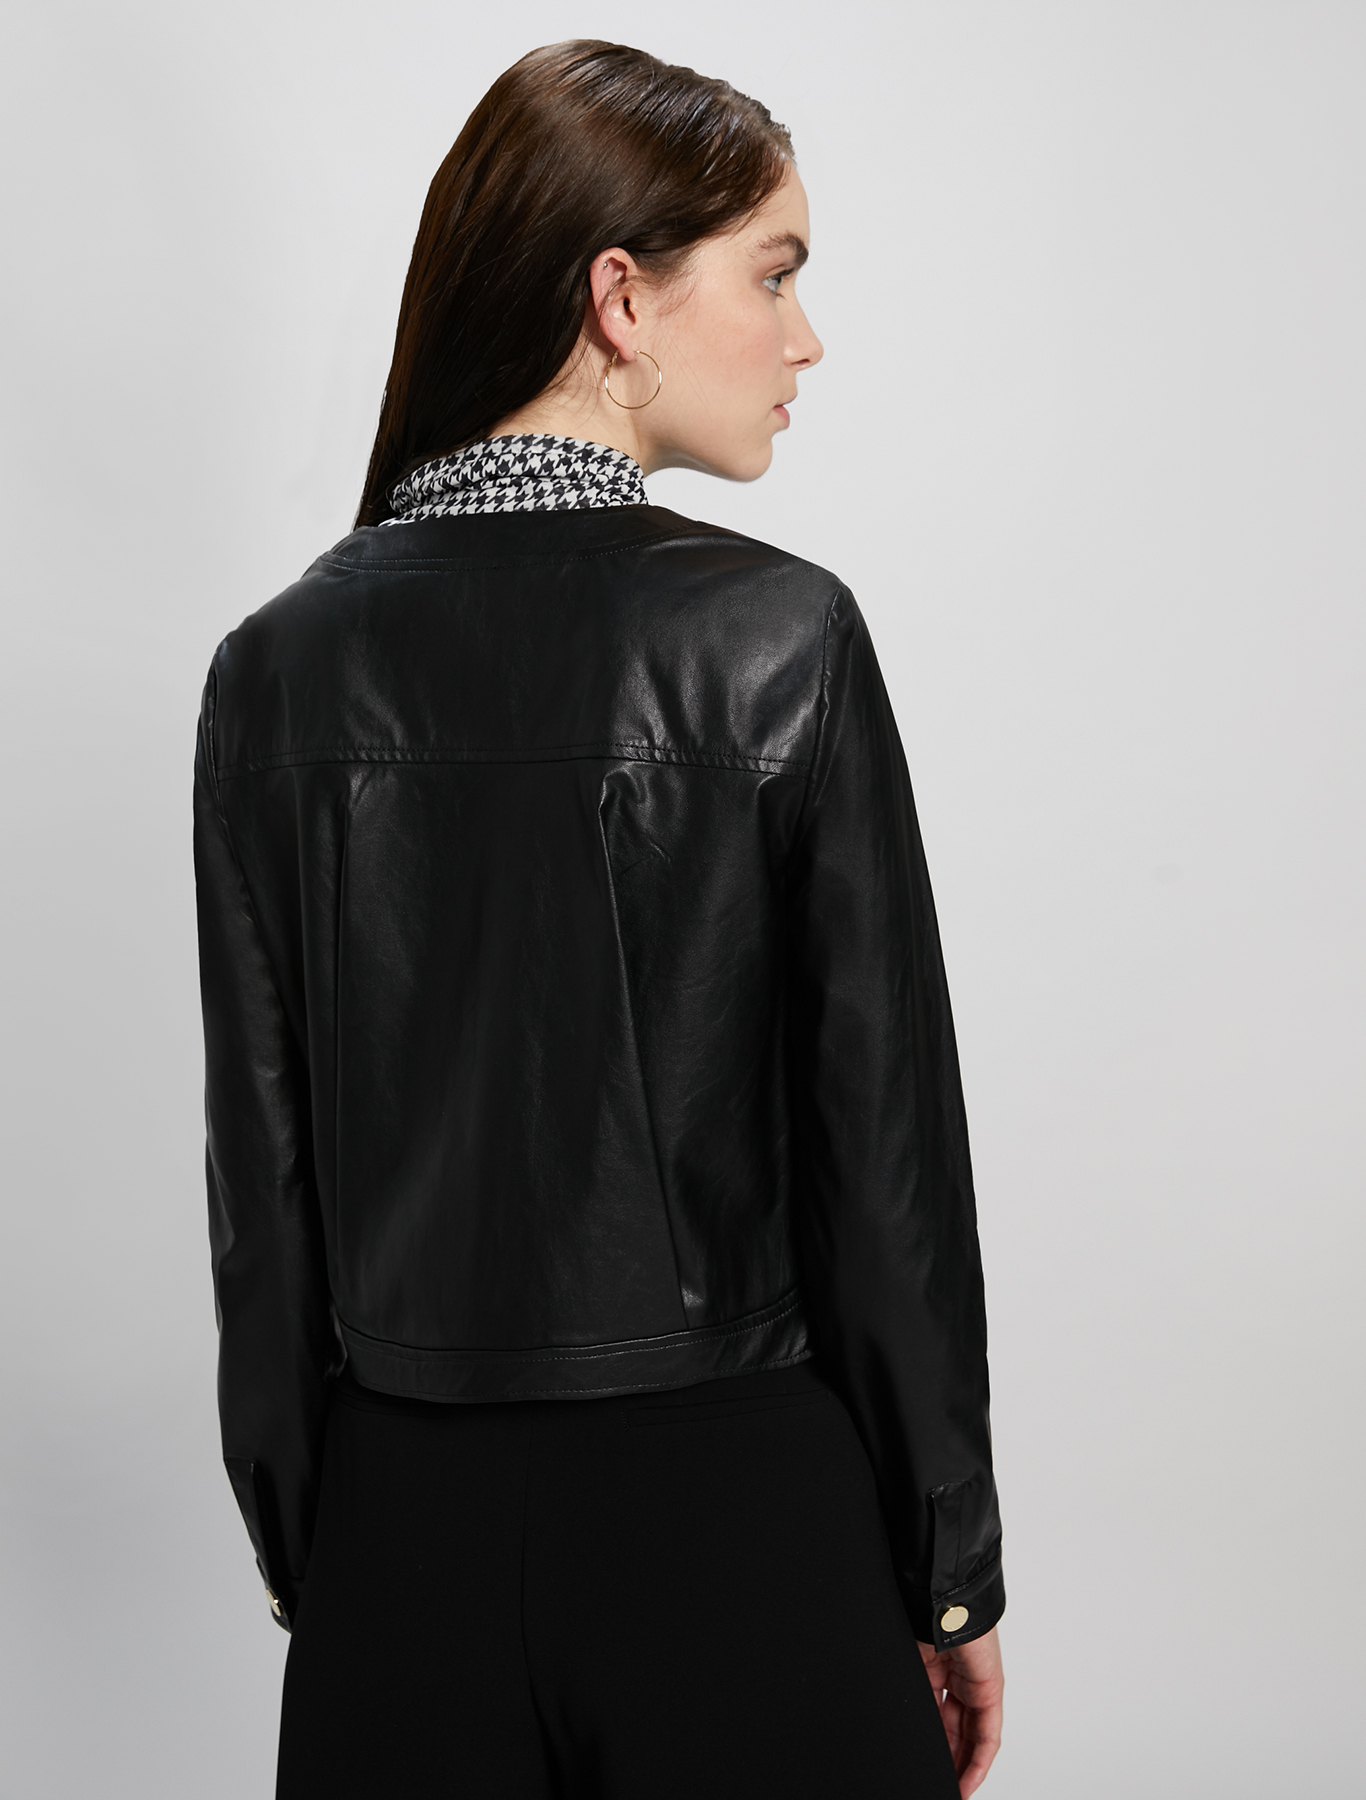 Coated jersey jacket - black - pennyblack